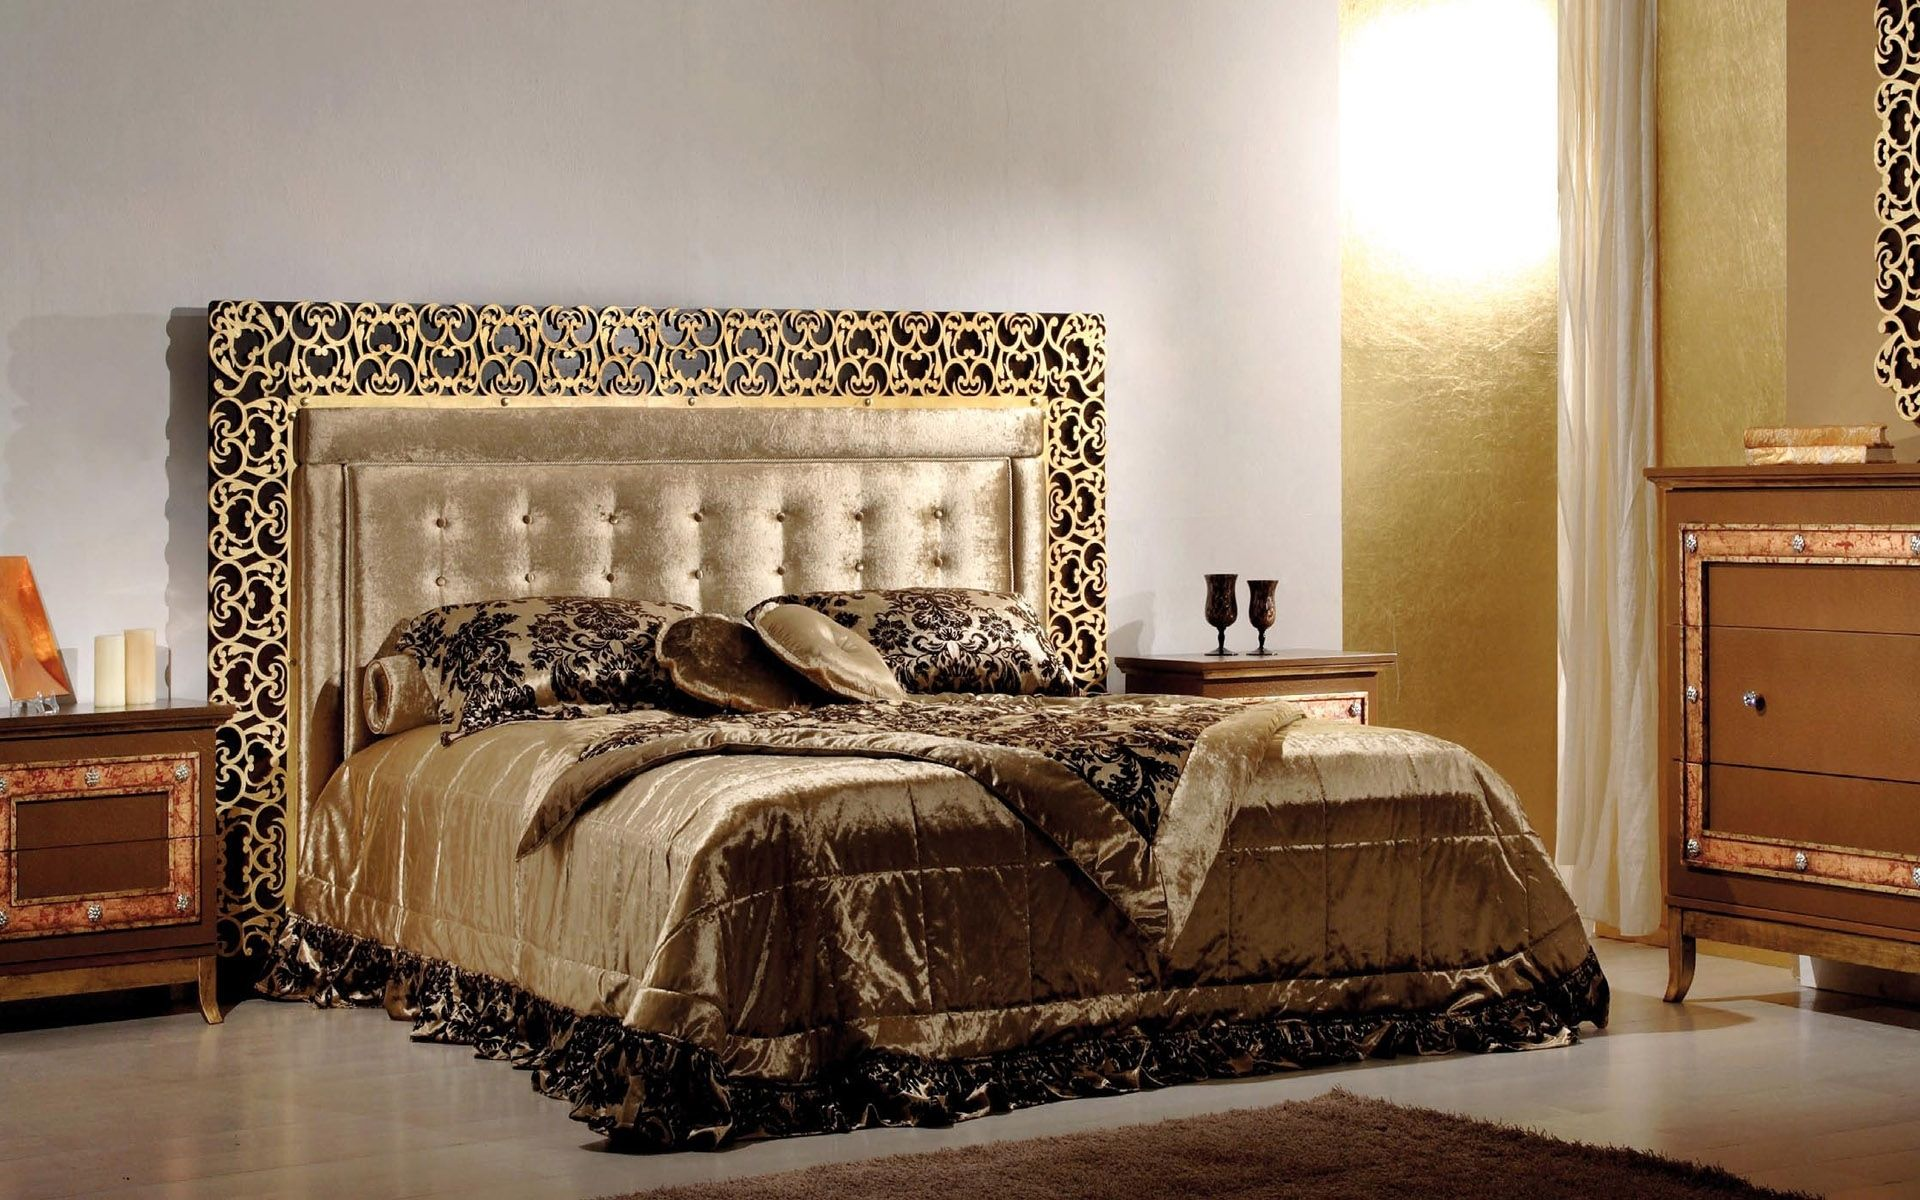 Luxury Inspiration Bed Collection Design Modern Gold Black Luxury Bedding Set Modern Bedding